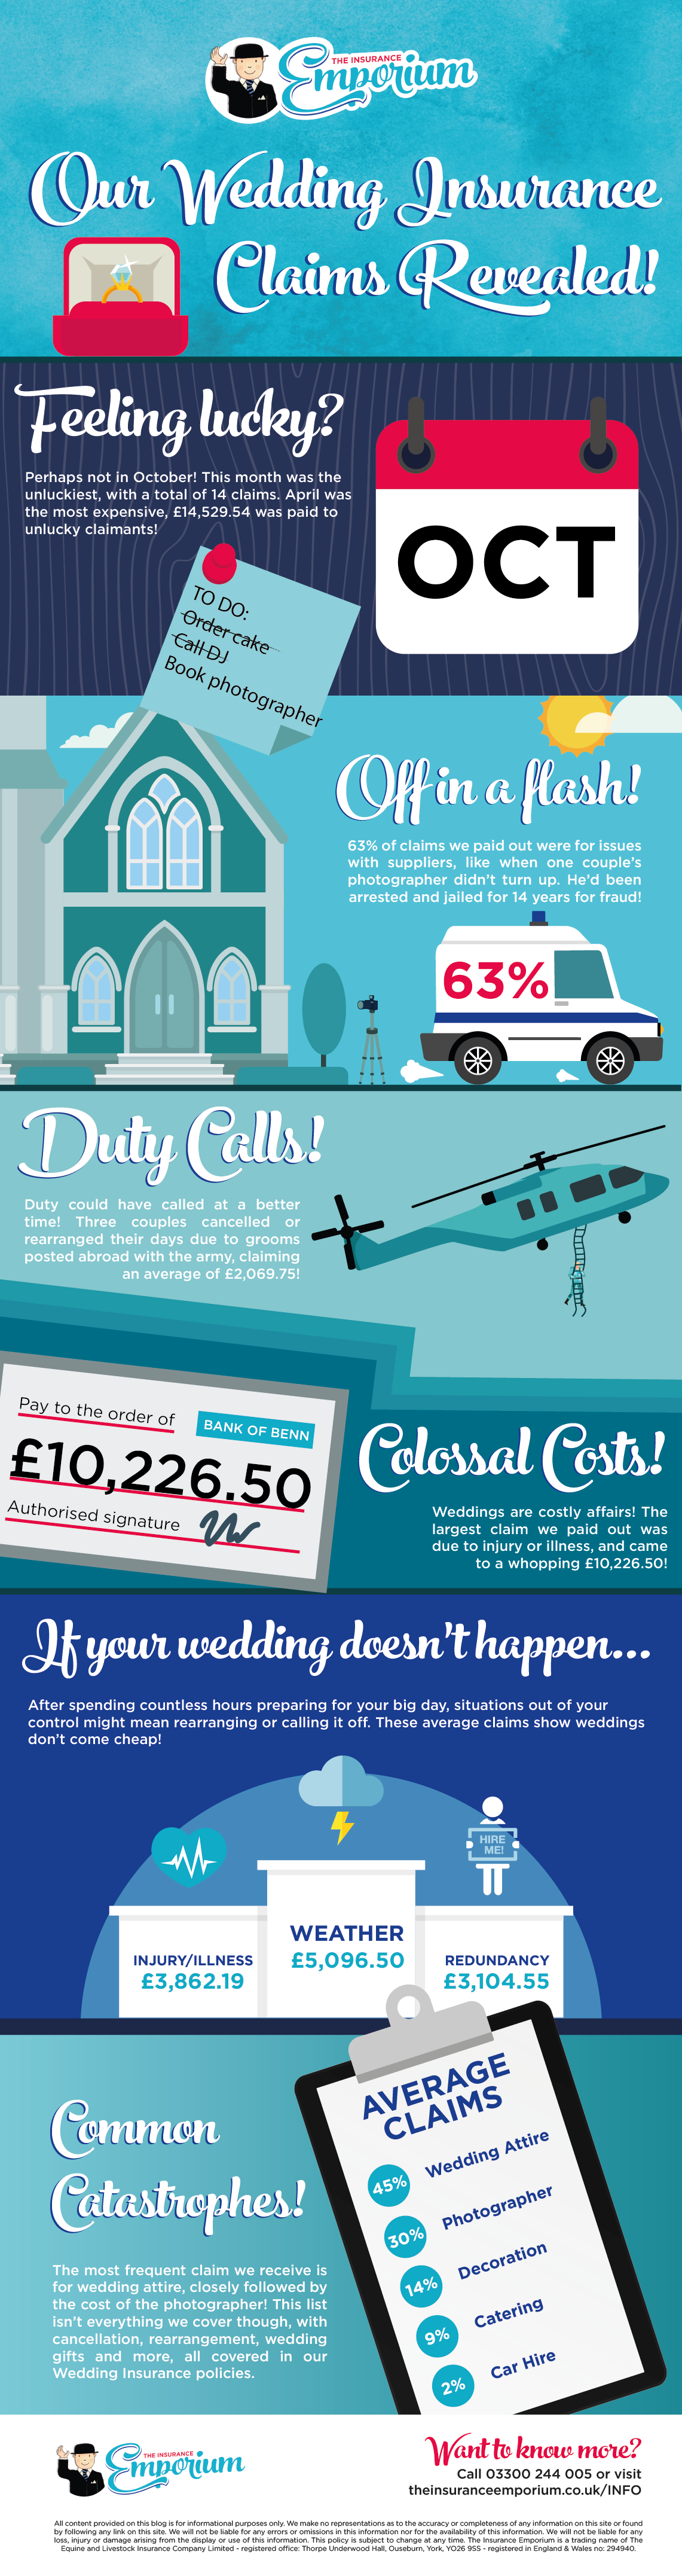 Wedding Insurance Claims Revealed Infographic.